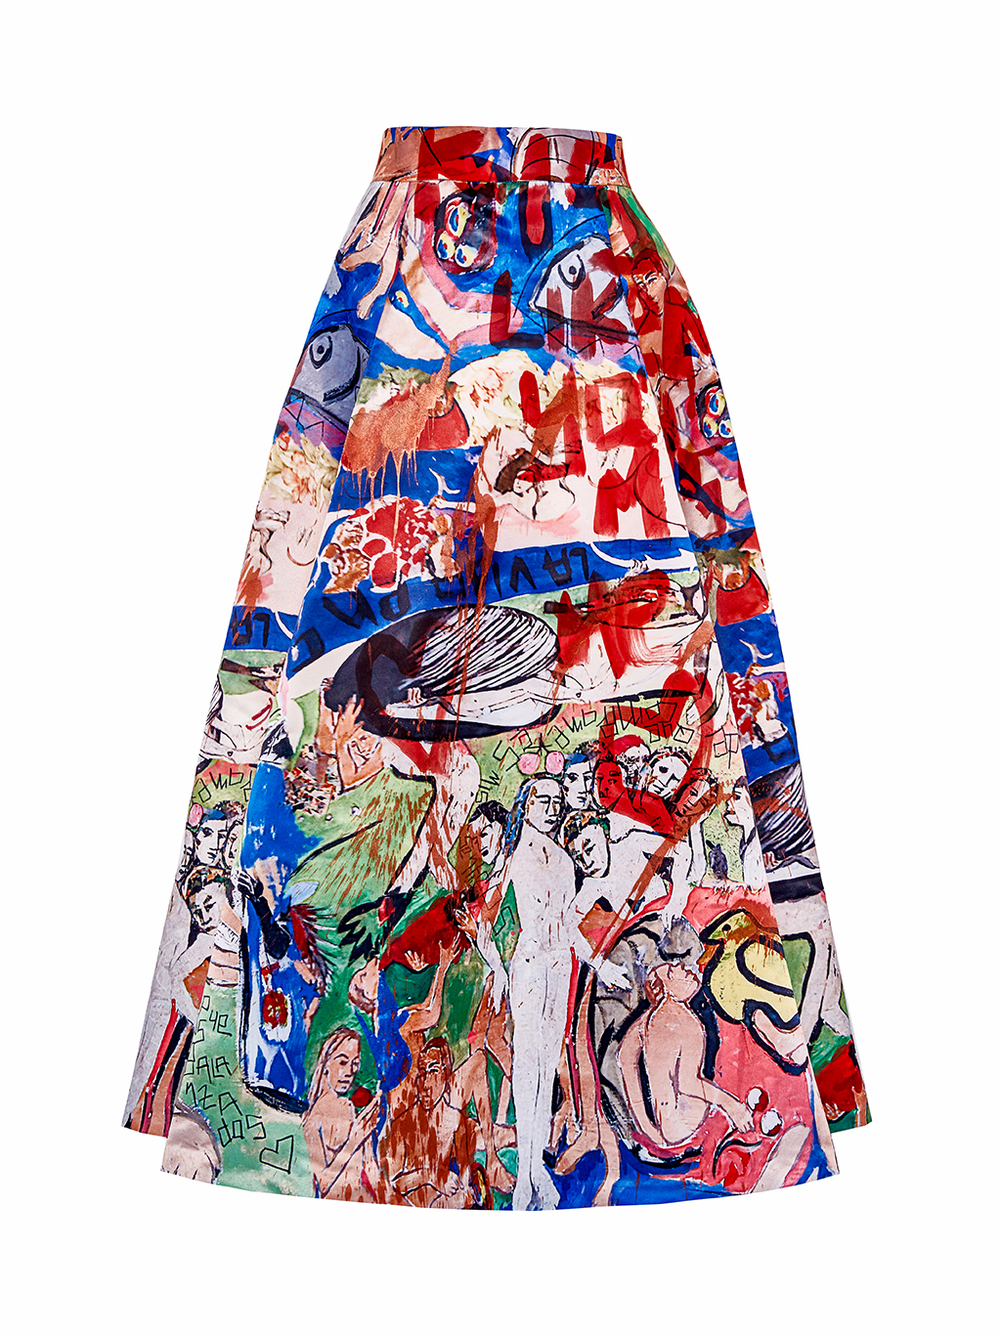 ZAPATA alice + olivia Ball Skirt Hand-Painted By Domingo Zapata, 2015